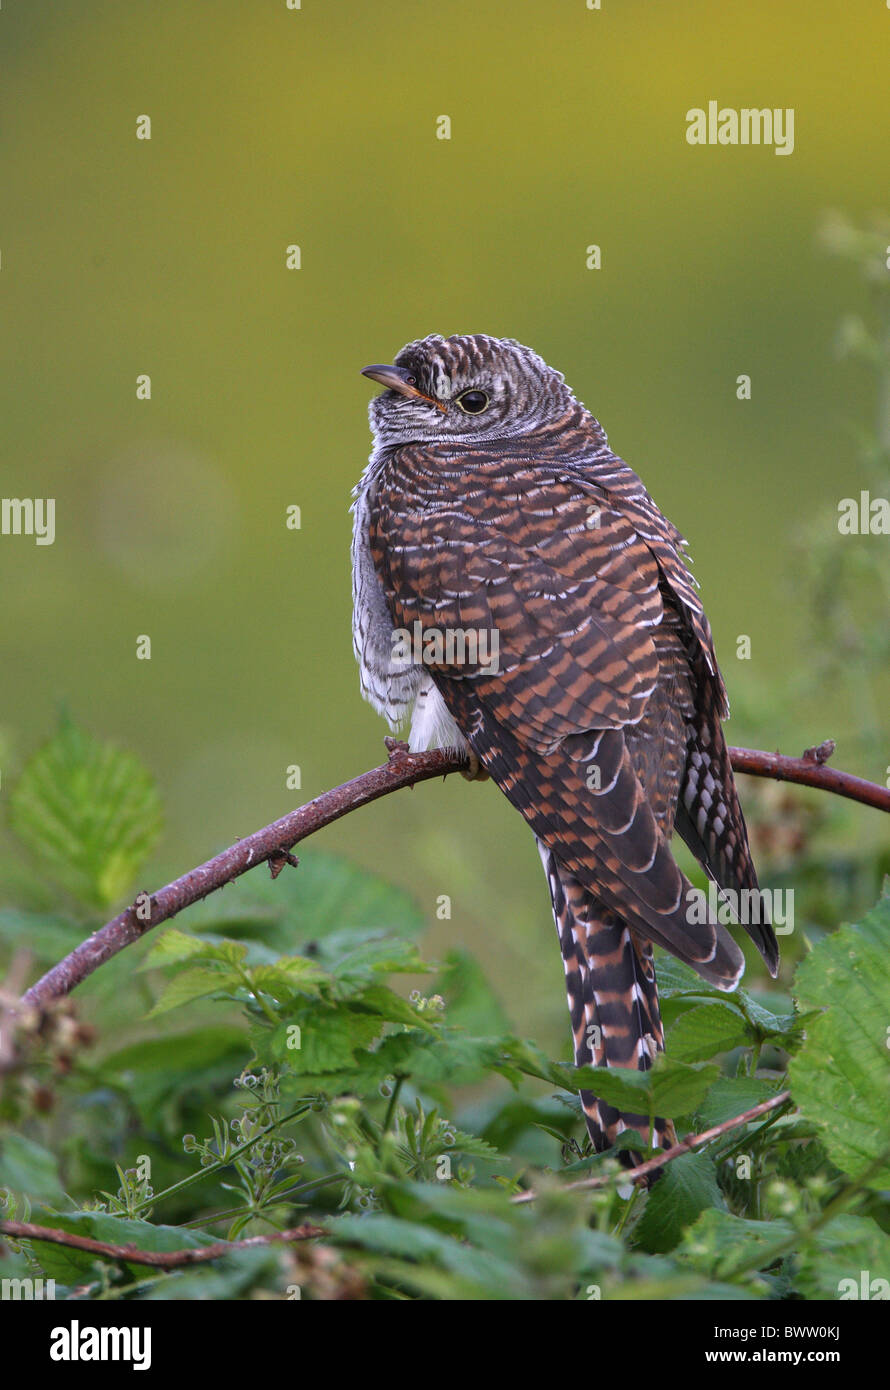 Common Cuckoo (Cuculus canorus) juvenile, perched on bramble, Norfolk, England, july - Stock Image